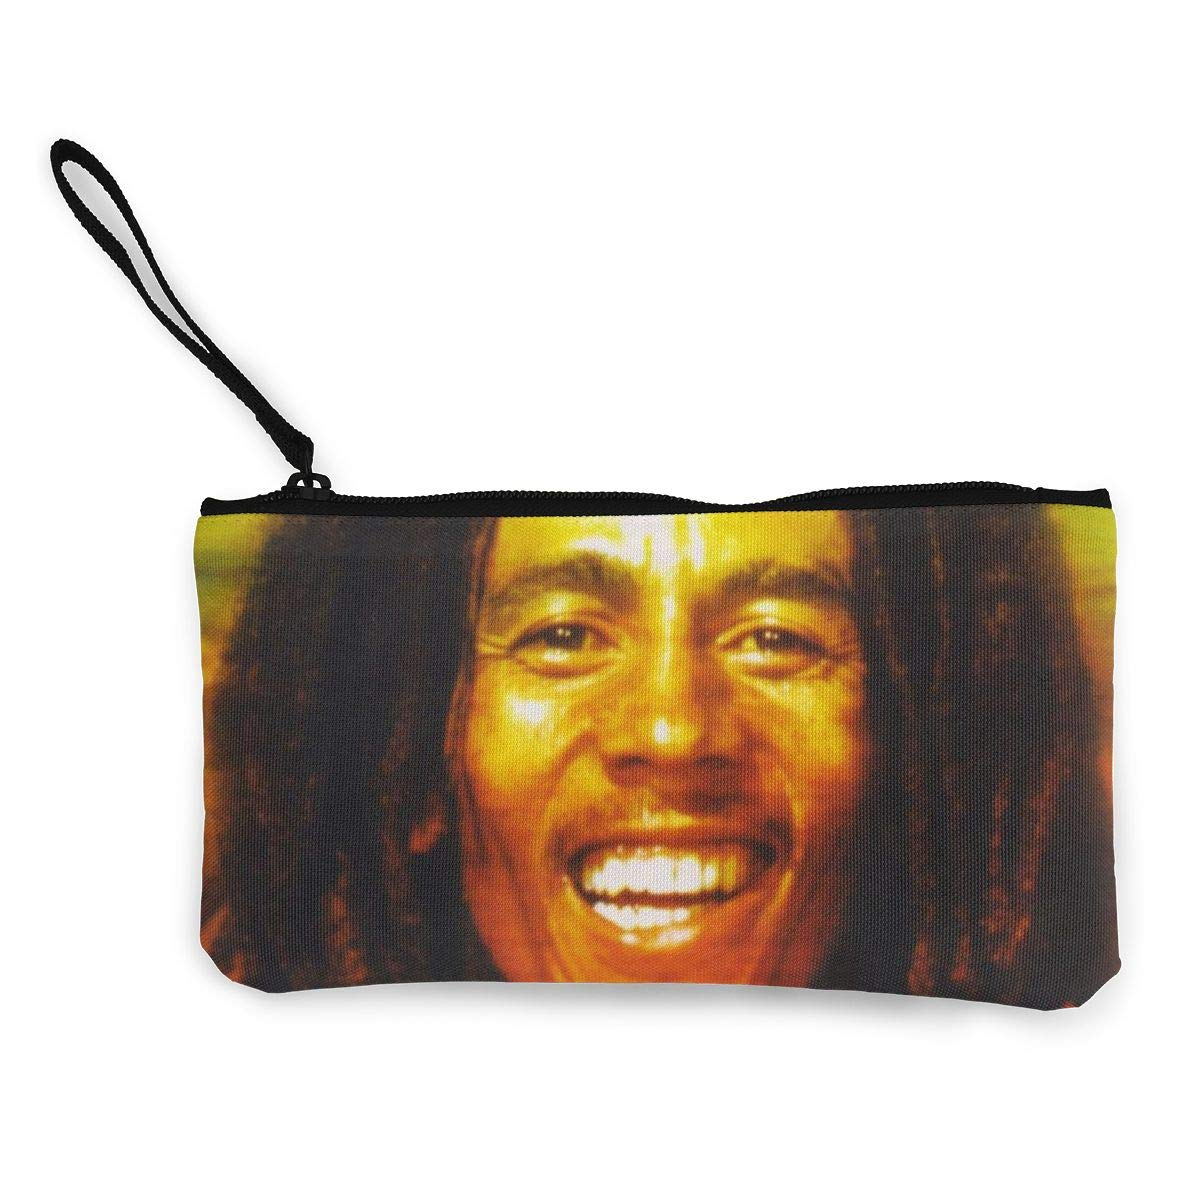 Thomas C Gaona Bob Marley Ladies Casual Coin Purse Zipper Pouch Wallet Canvas Clutch Wristlet Cellphone Bag with Handle for